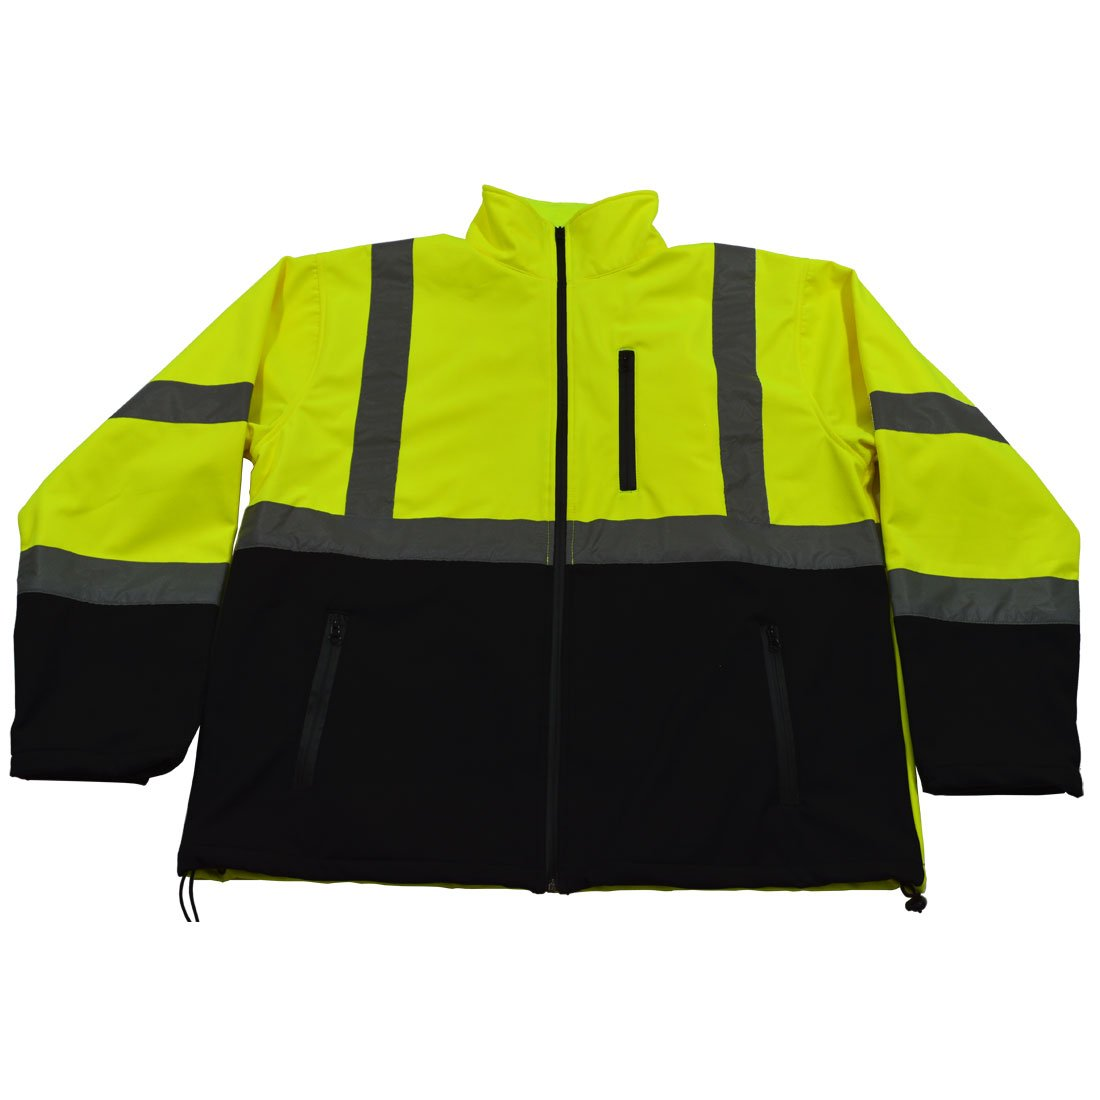 Petra Roc LBSFJ1-C3-M ANSI 107 Class 3 Water Resistant Softshell High Visibility Safety Jacket, Medium, Lime/Black